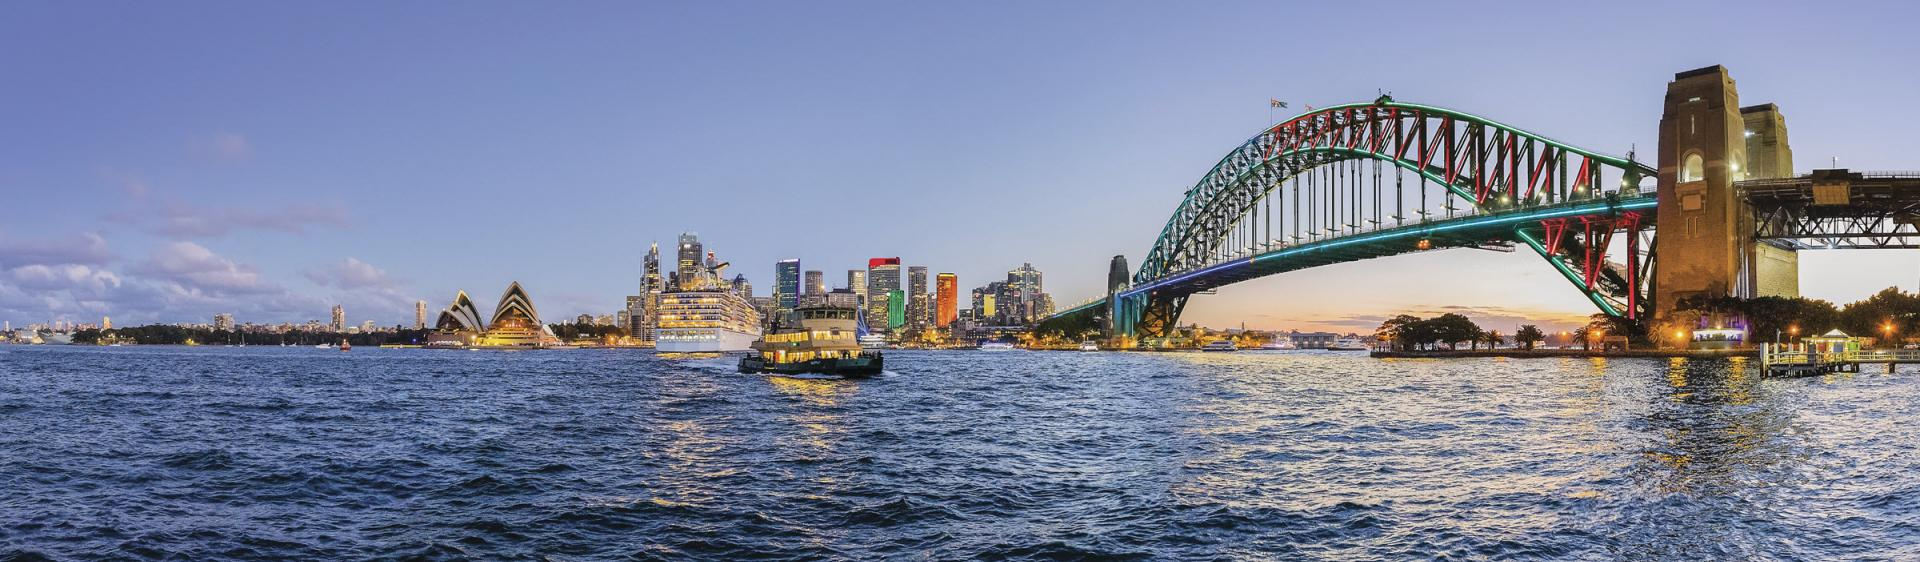 What is Sydney famous for?